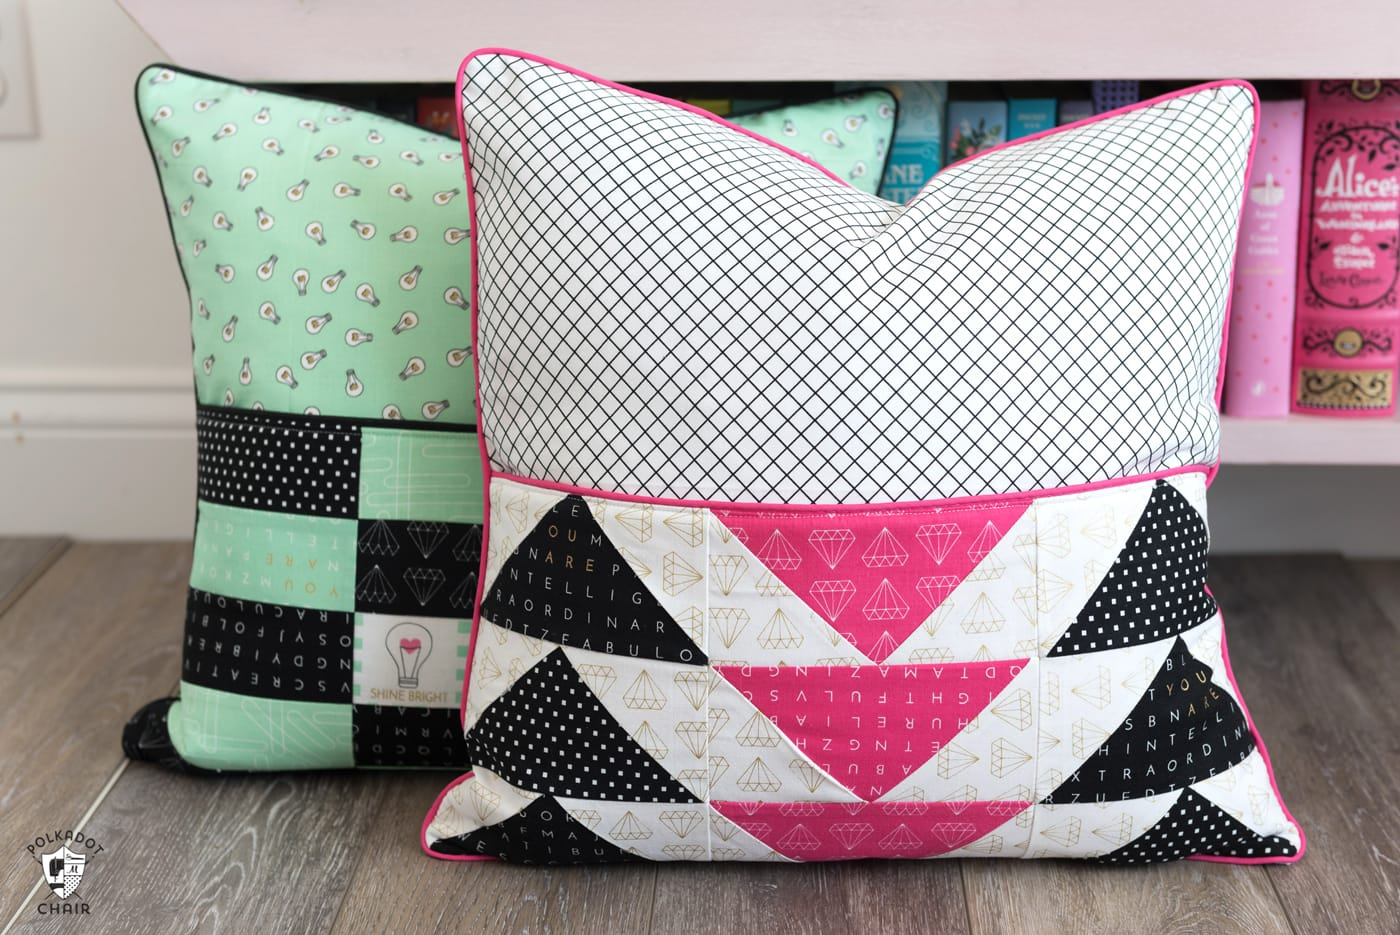 reading sewing pattern instructions